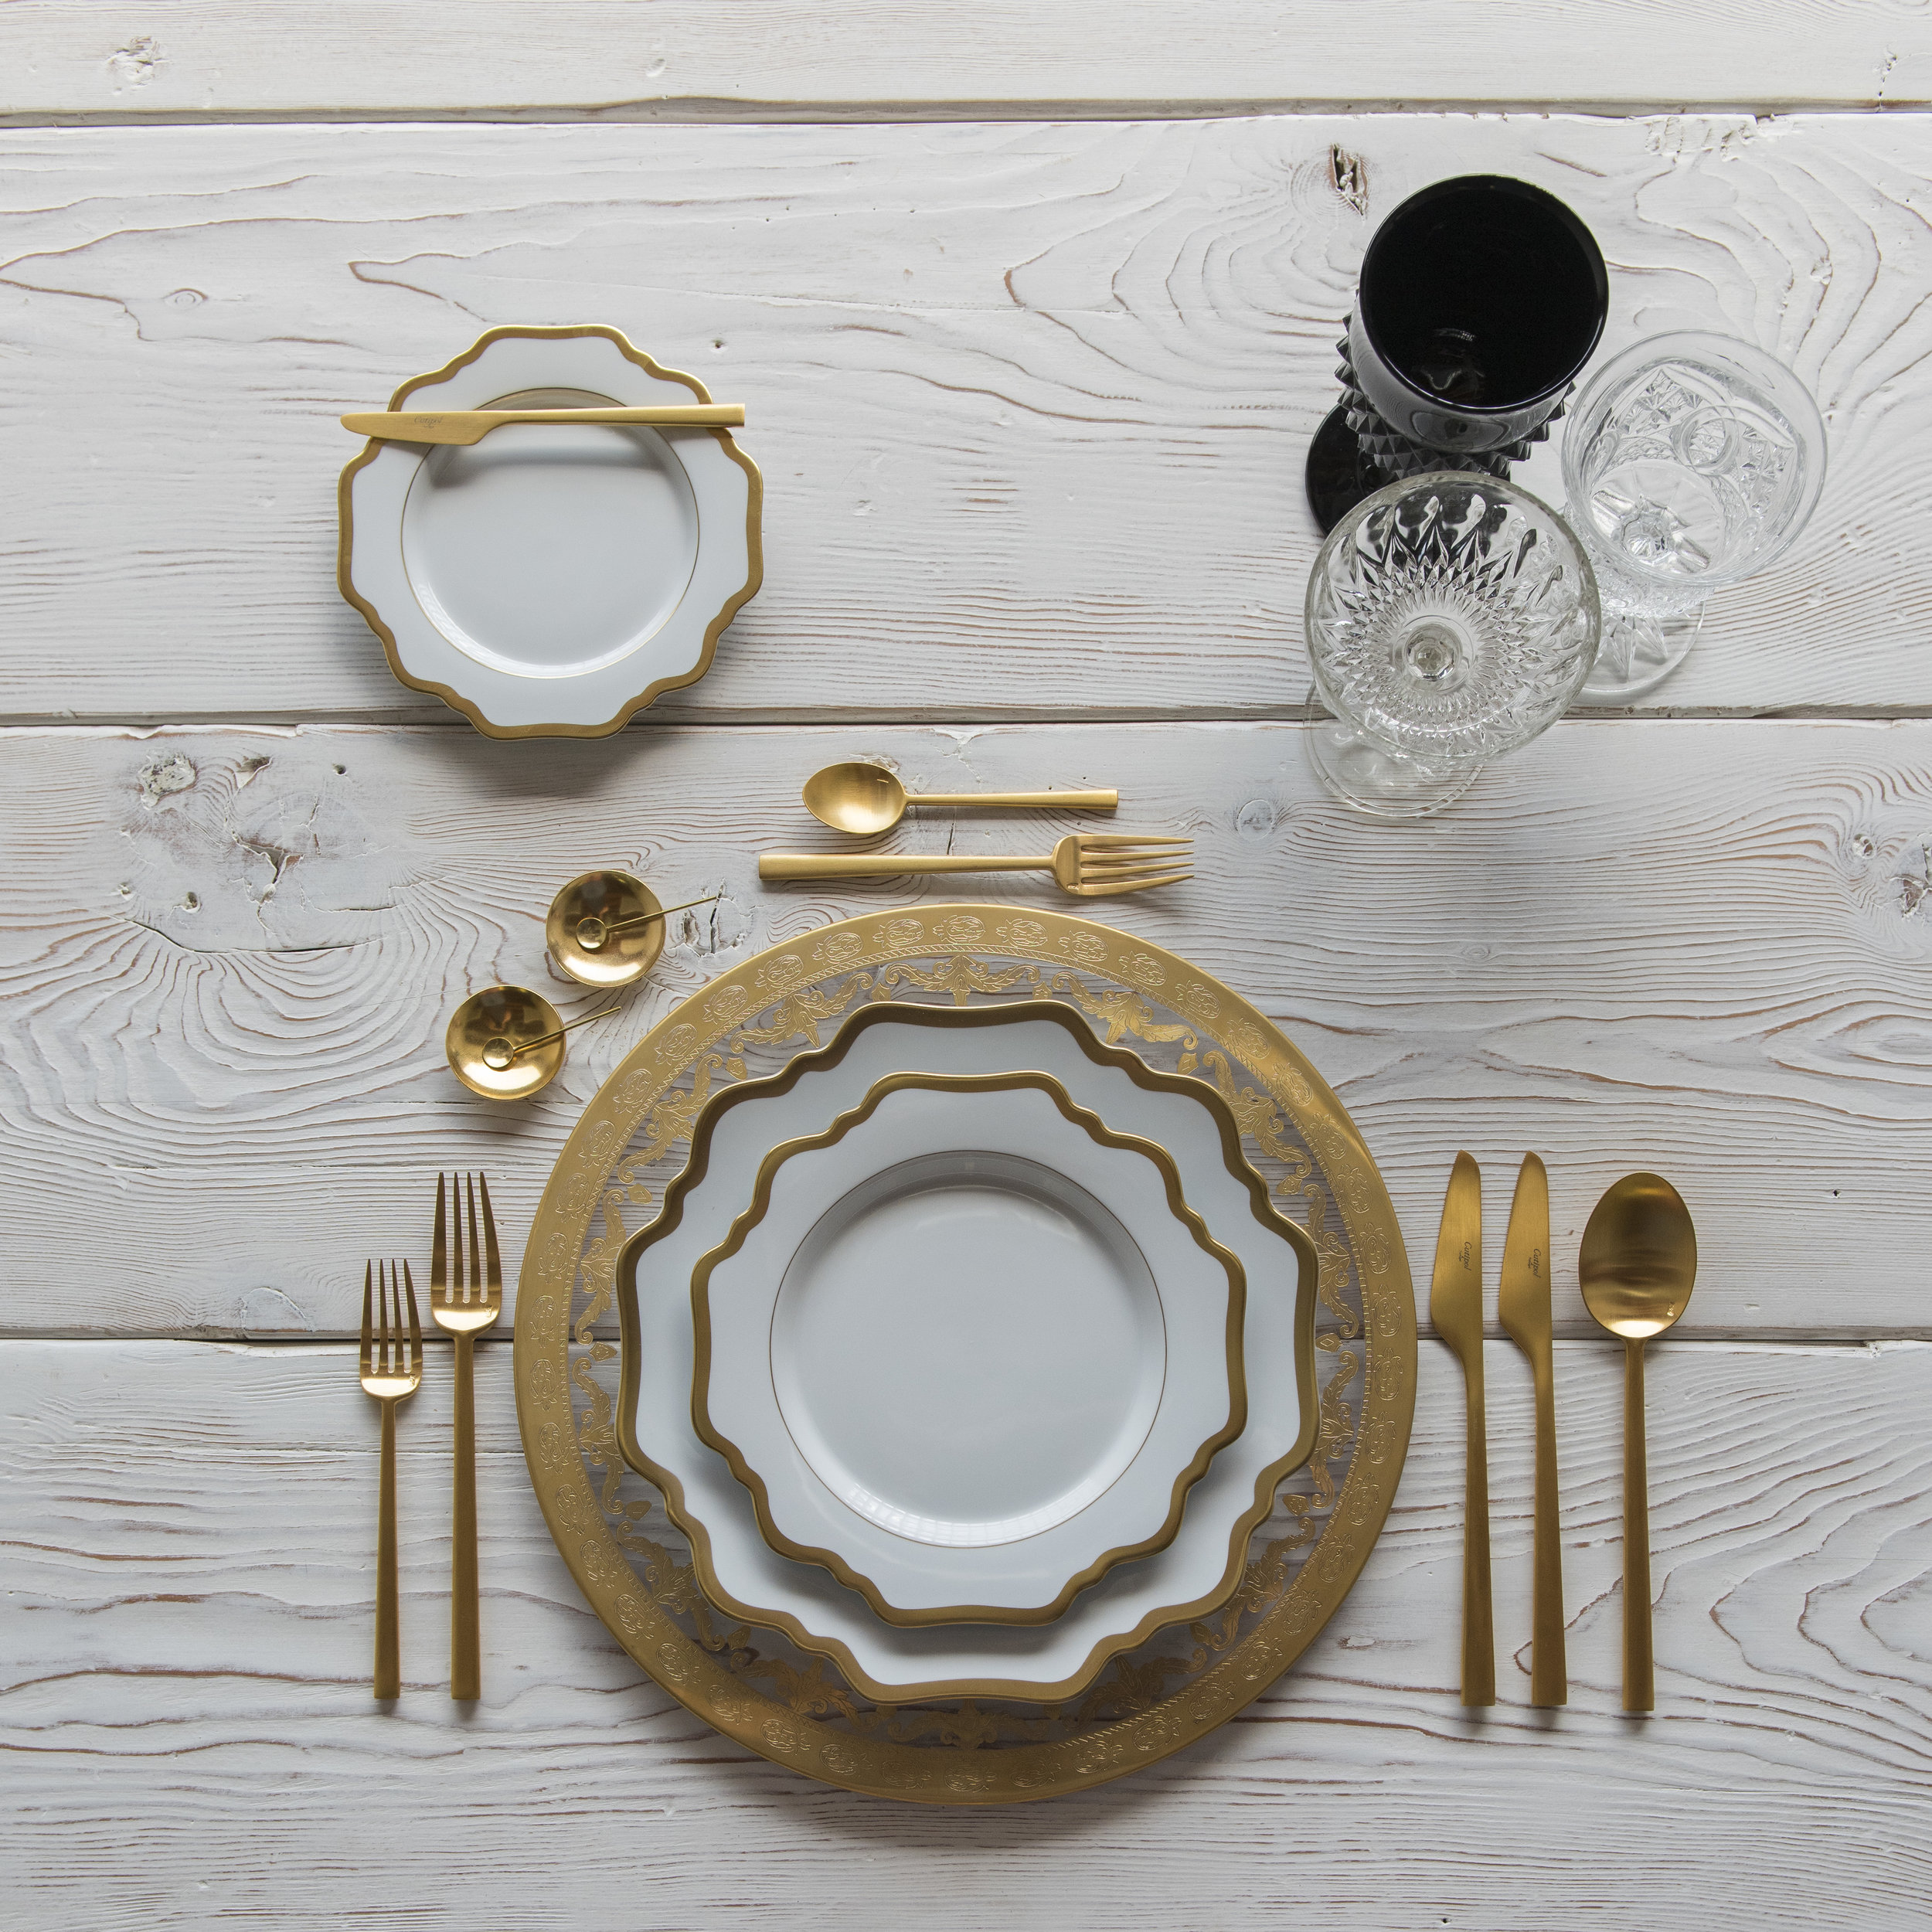 RENT: Versailles Glass Chargers in 24k Gold + Anna Weatherley Dinnerware in White/Gold + Rondo Flatware in Brushed 24k Gold + Black Vintage Goblets + Early American Pressed Glass Goblets + Vintage Champagne Coupes + 14k Gold Salt Cellars + Tiny Gold Spoons   SHOP: Anna Weatherley Dinnerware in White/Gold + Rondo Flatware in Brushed 24k Gold + 14k Gold Salt Cellars + Tiny Gold Spoons